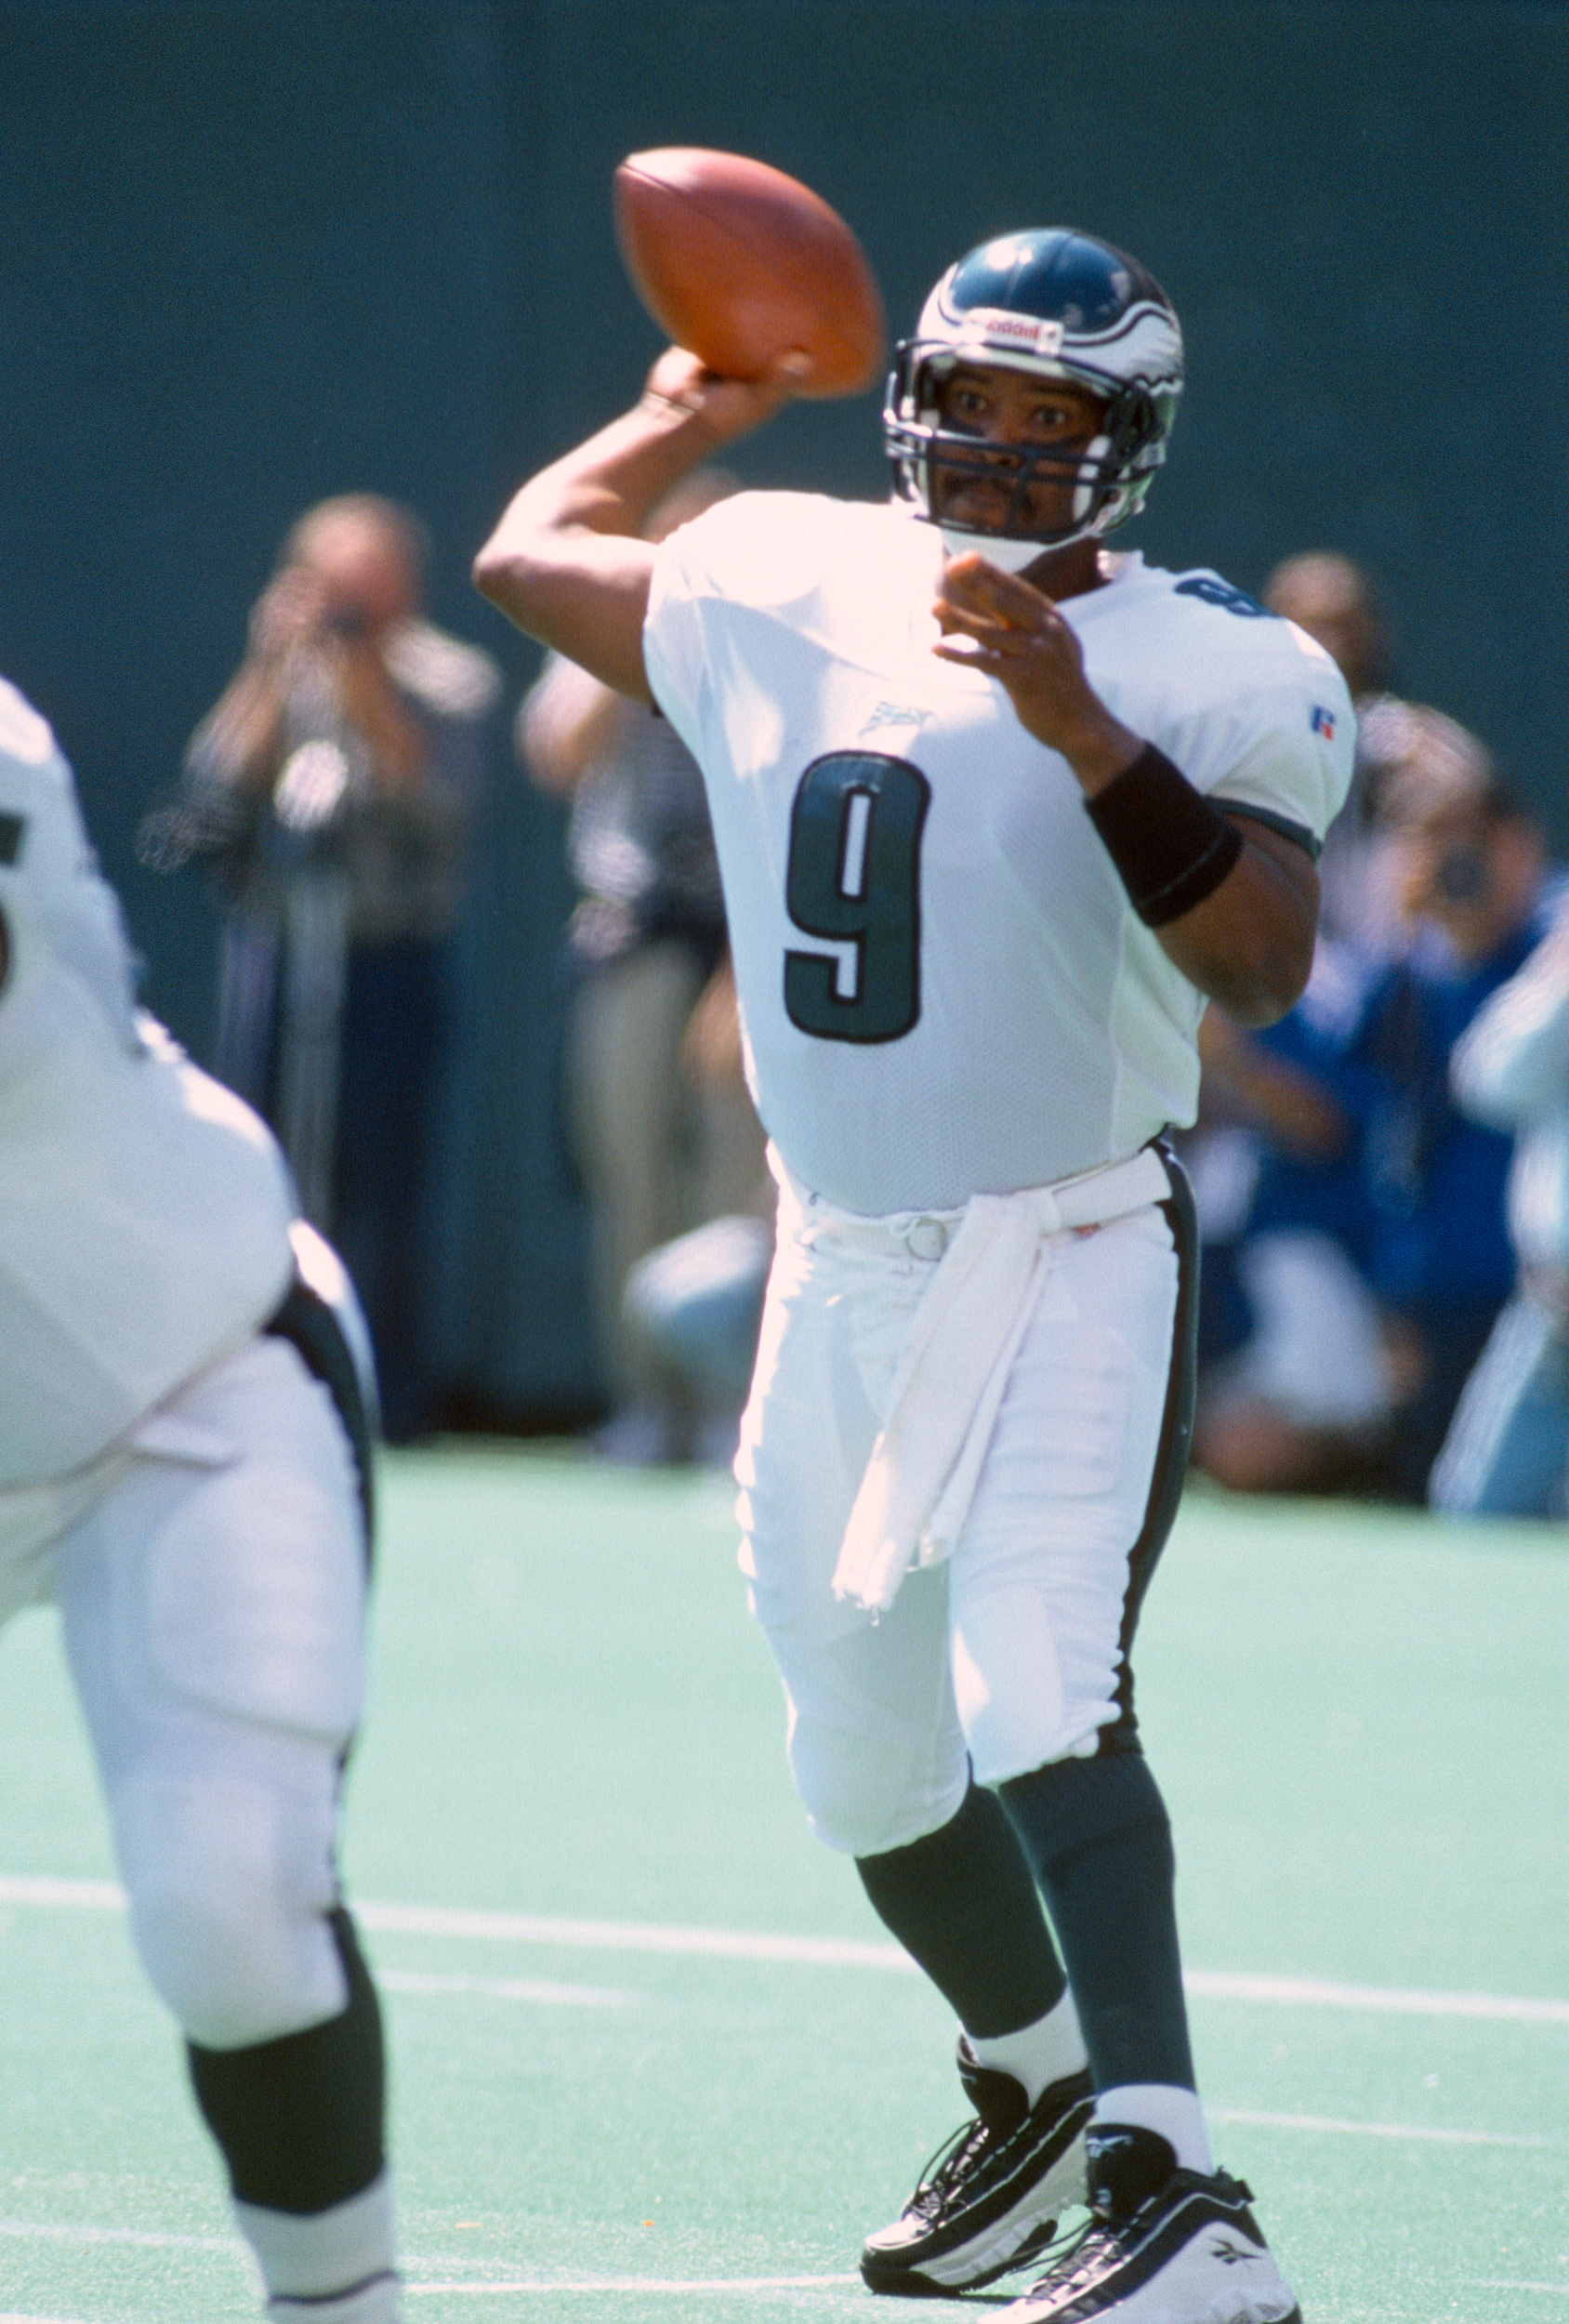 Rodney Peete #9 of the Philadelphia Eagles throws a pass against the Detroit Lions during an NFL Football game September 15, 1996 at Veterans Stadium in Philadelphia, Pennsylvania. Peete played for the Eagles from 1995-98.